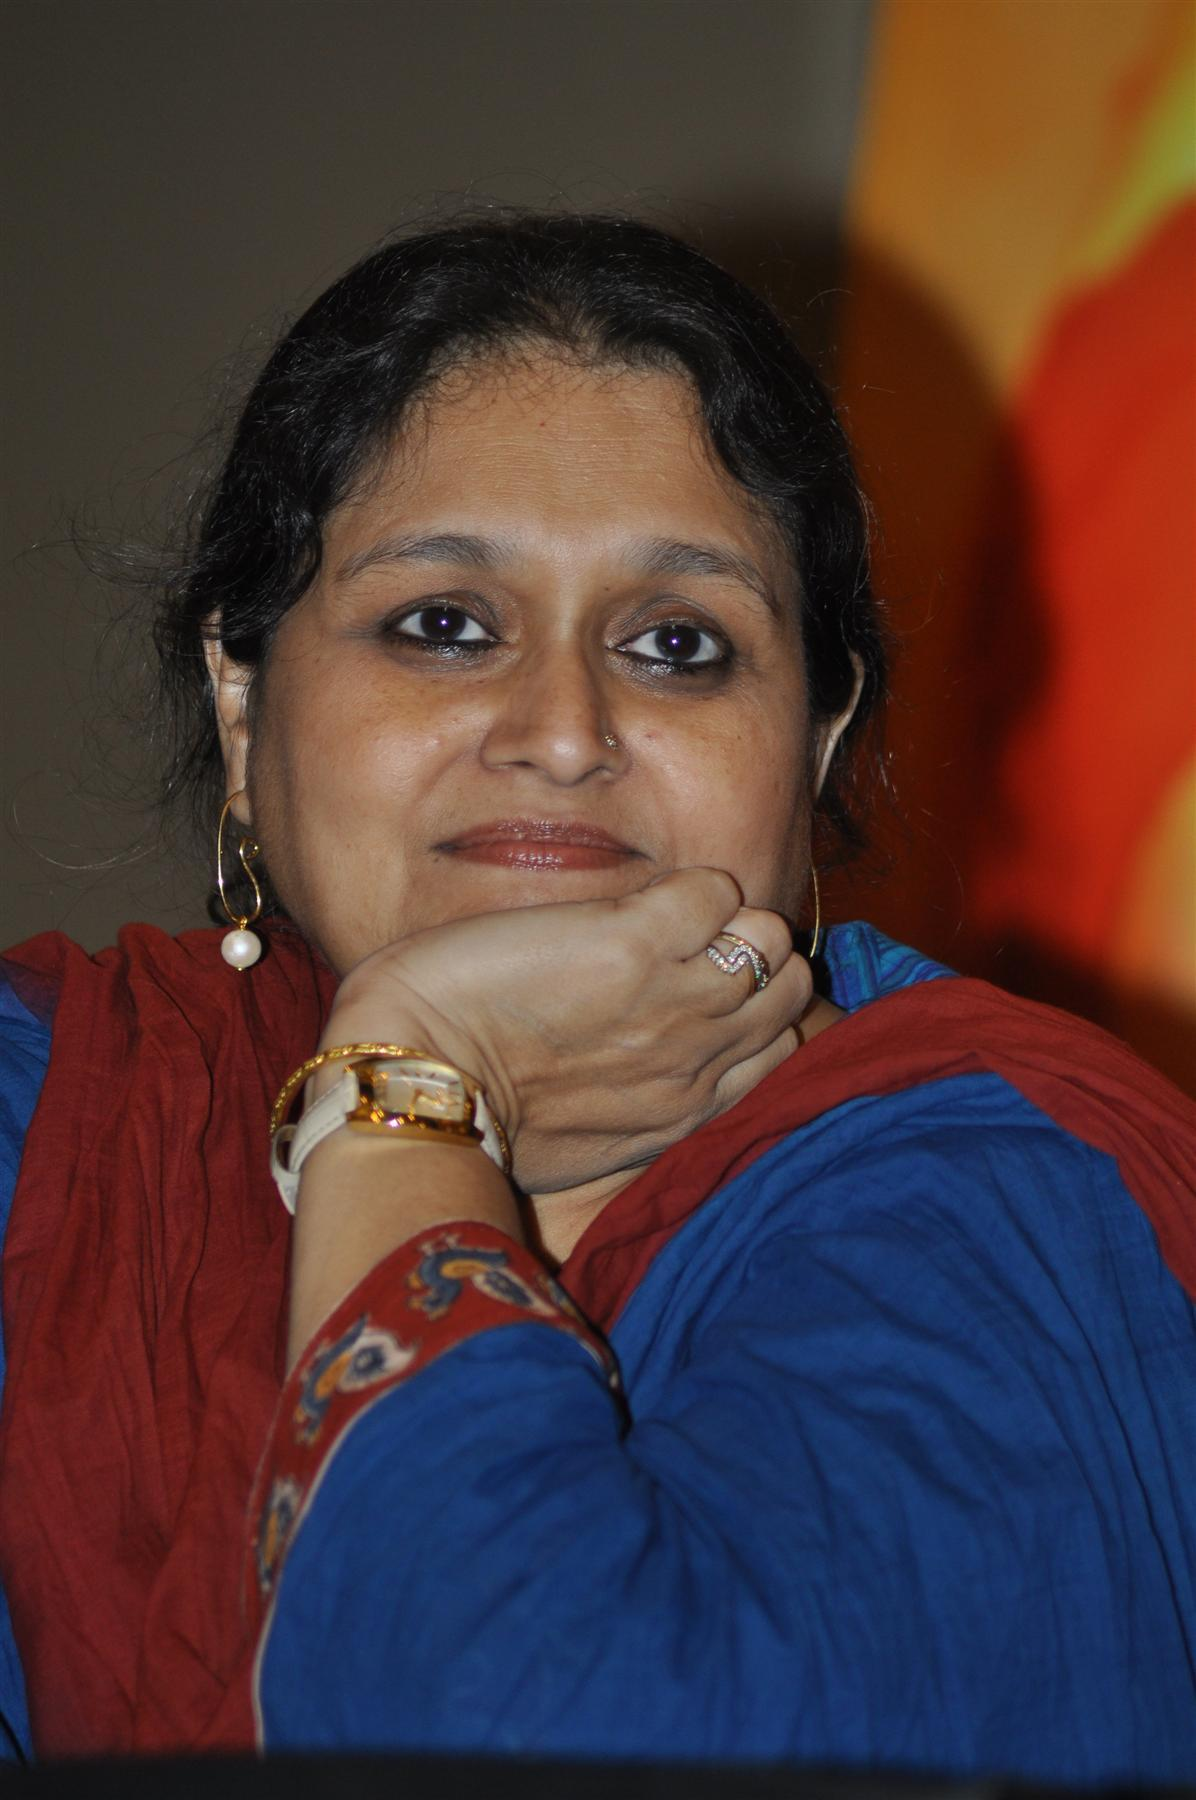 Supriya Pathak nude (56 foto and video), Topless, Sideboobs, Twitter, cleavage 2018